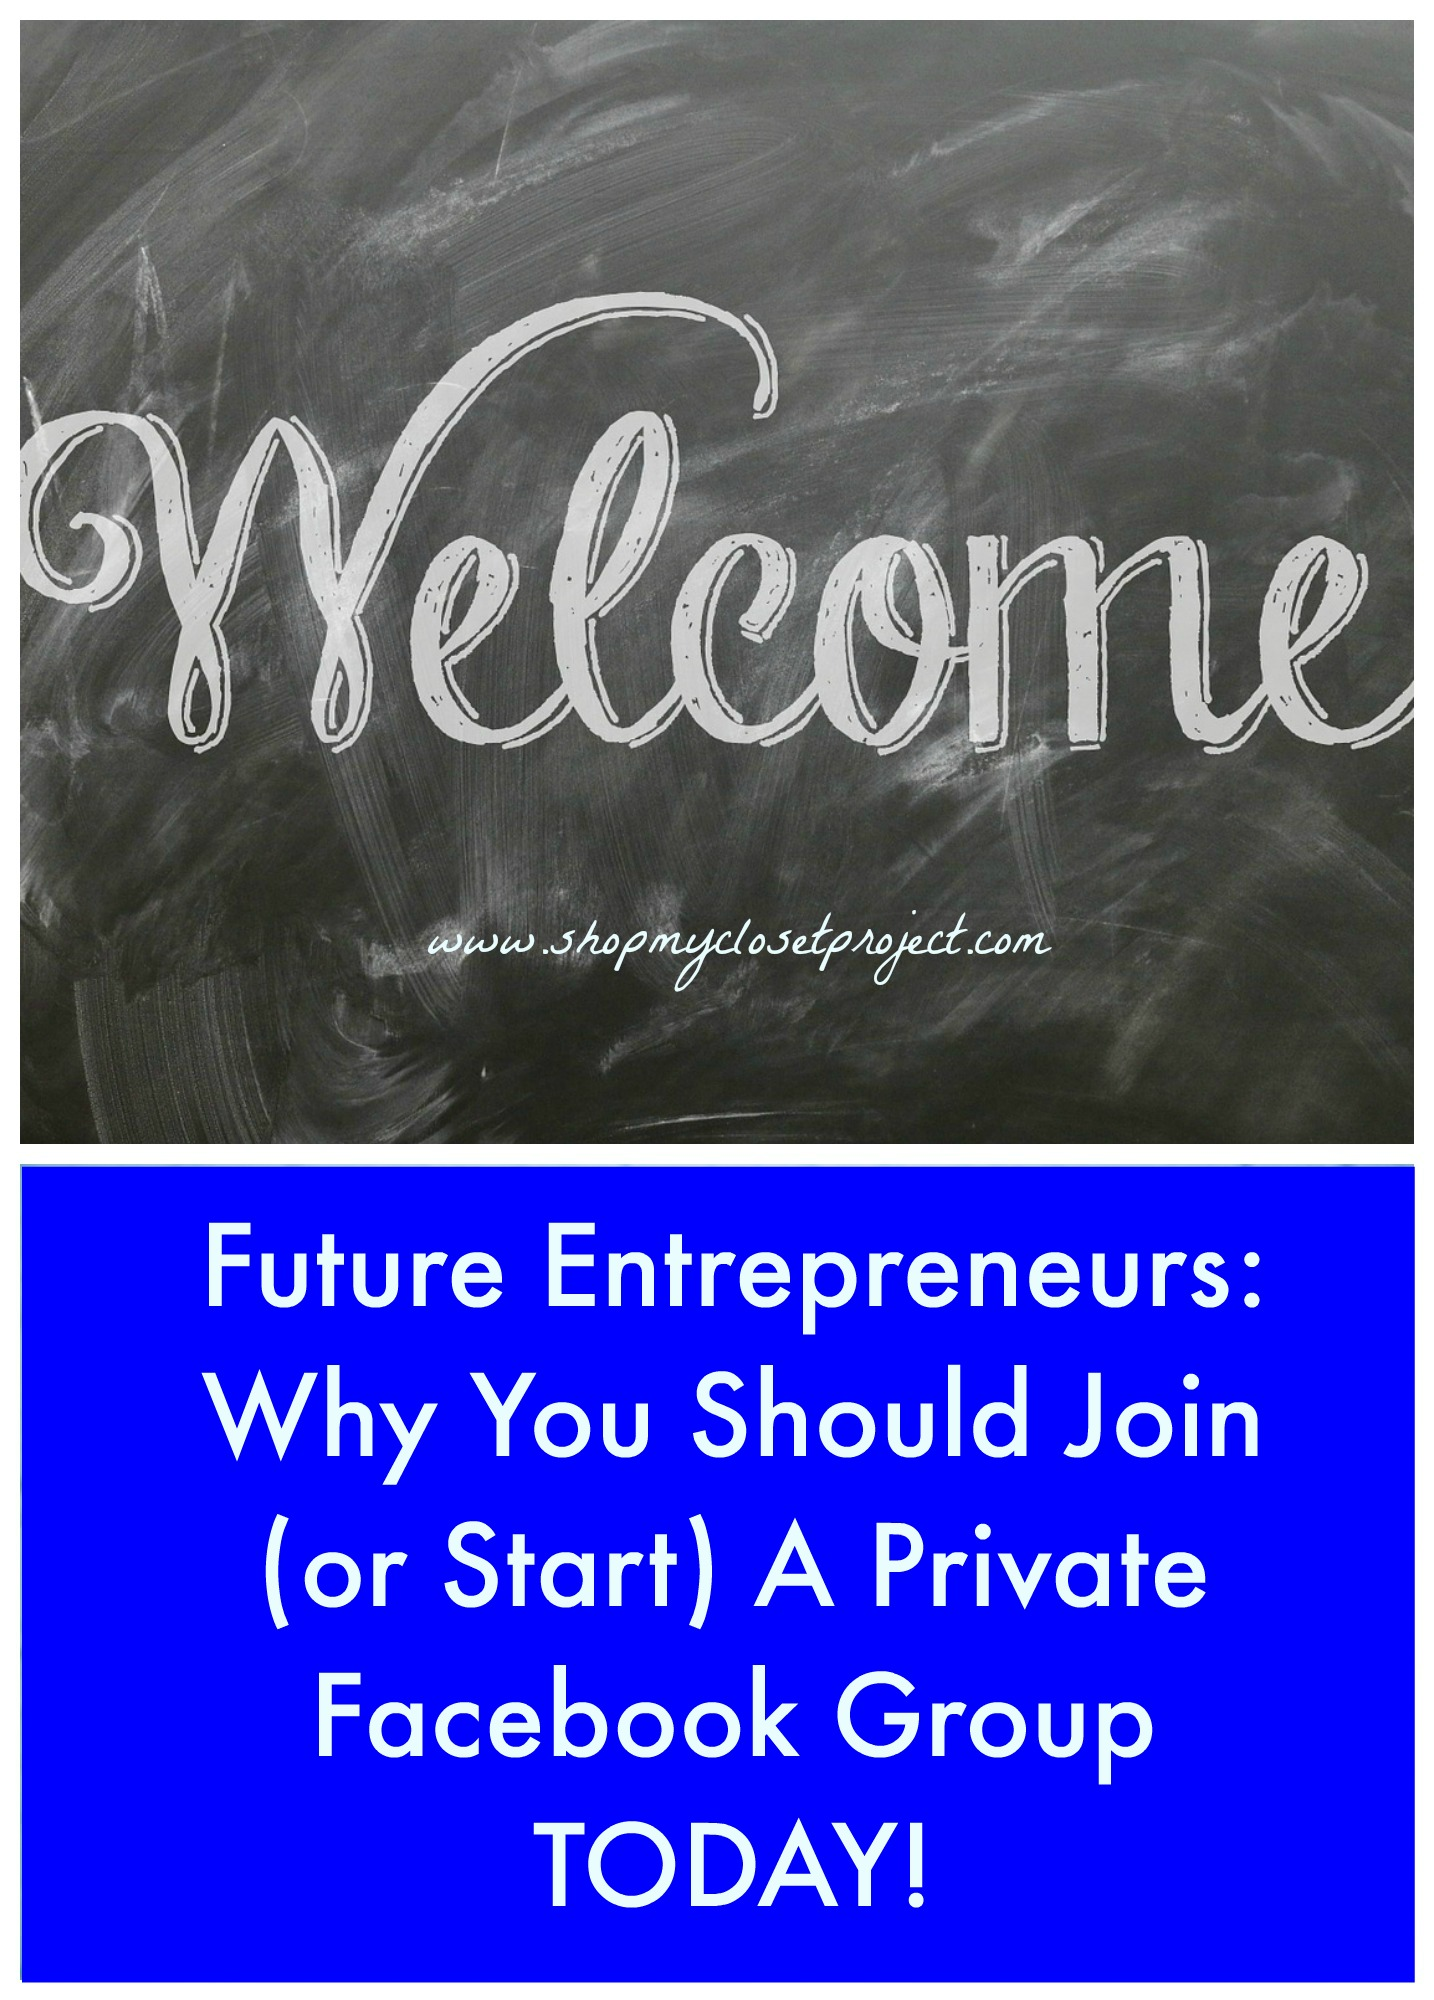 Future Entrepreneurs-Why You Should Join (or Start) A Private Facebook Group TODAY!